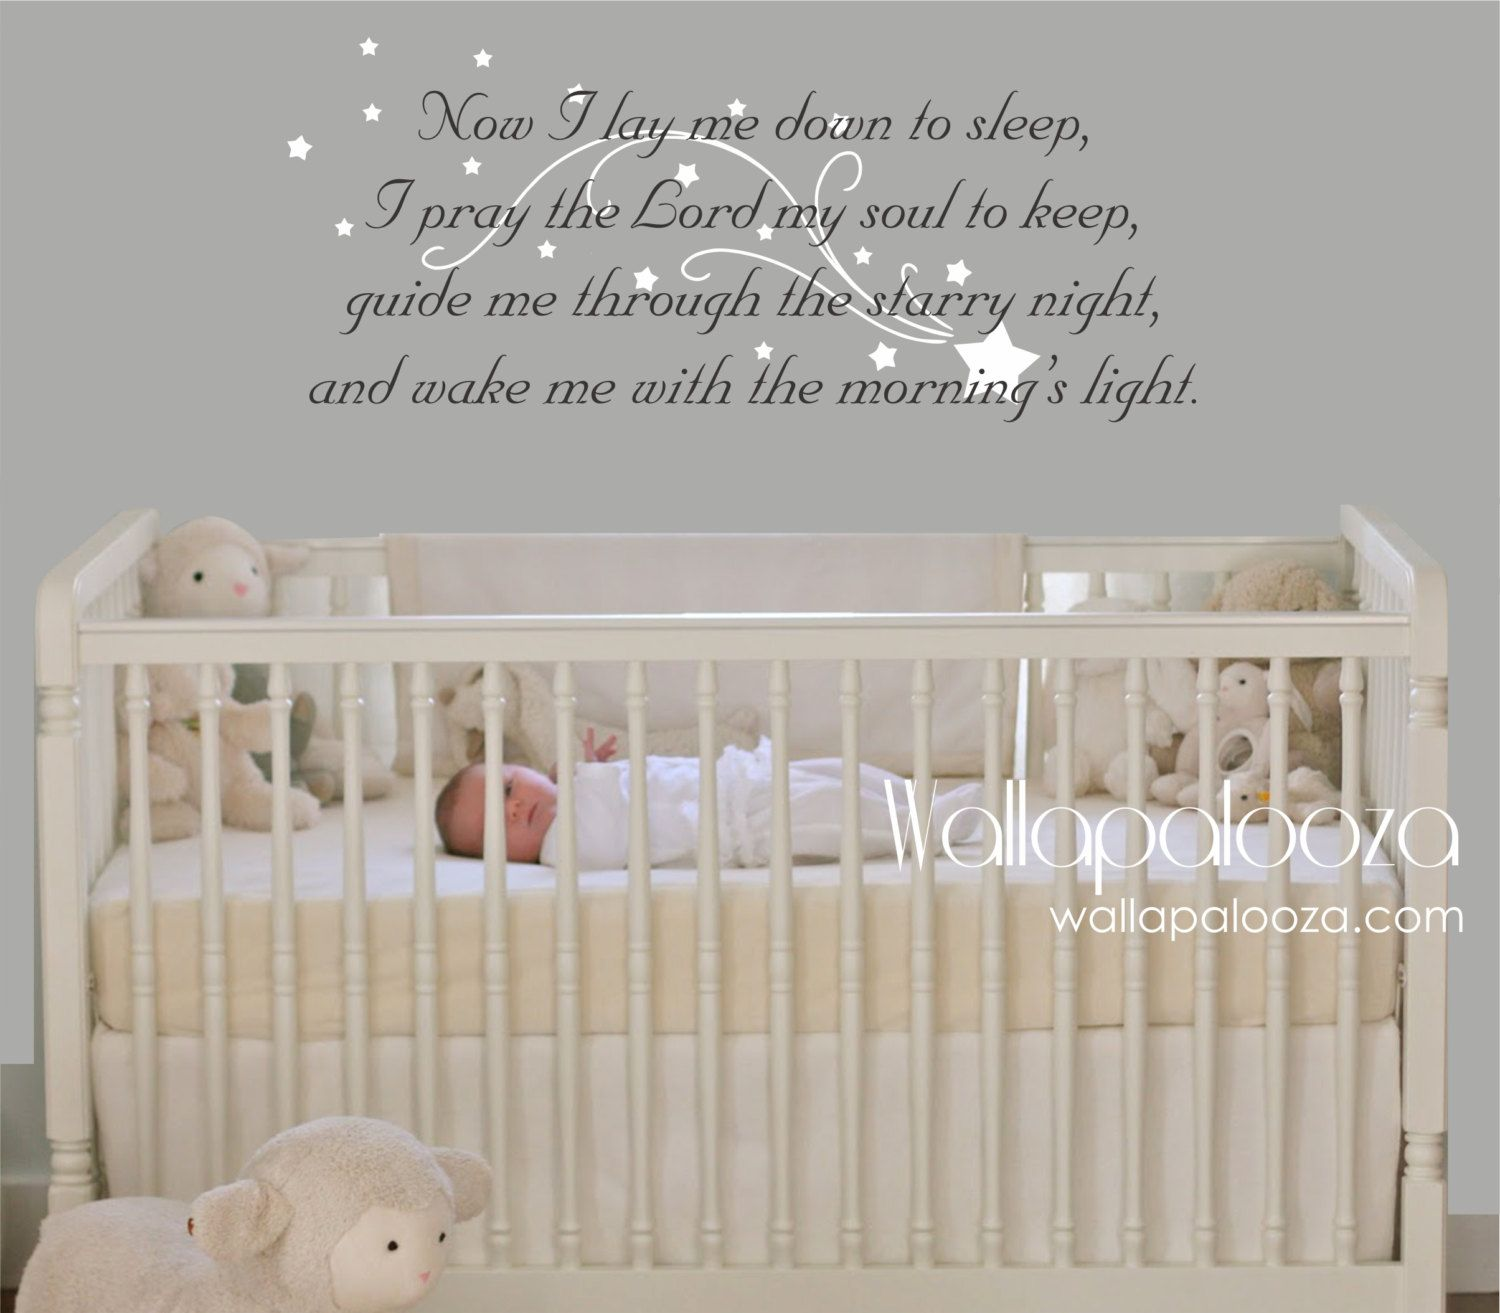 Now I Lay Me Down To Sleep Wall Decal   Prayer Wall Decal   Baby Room Wall  Decal   Nursery Wall Decal   Nursery Wall Art   Wall Decor By  WallapaloozaDecals Part 29